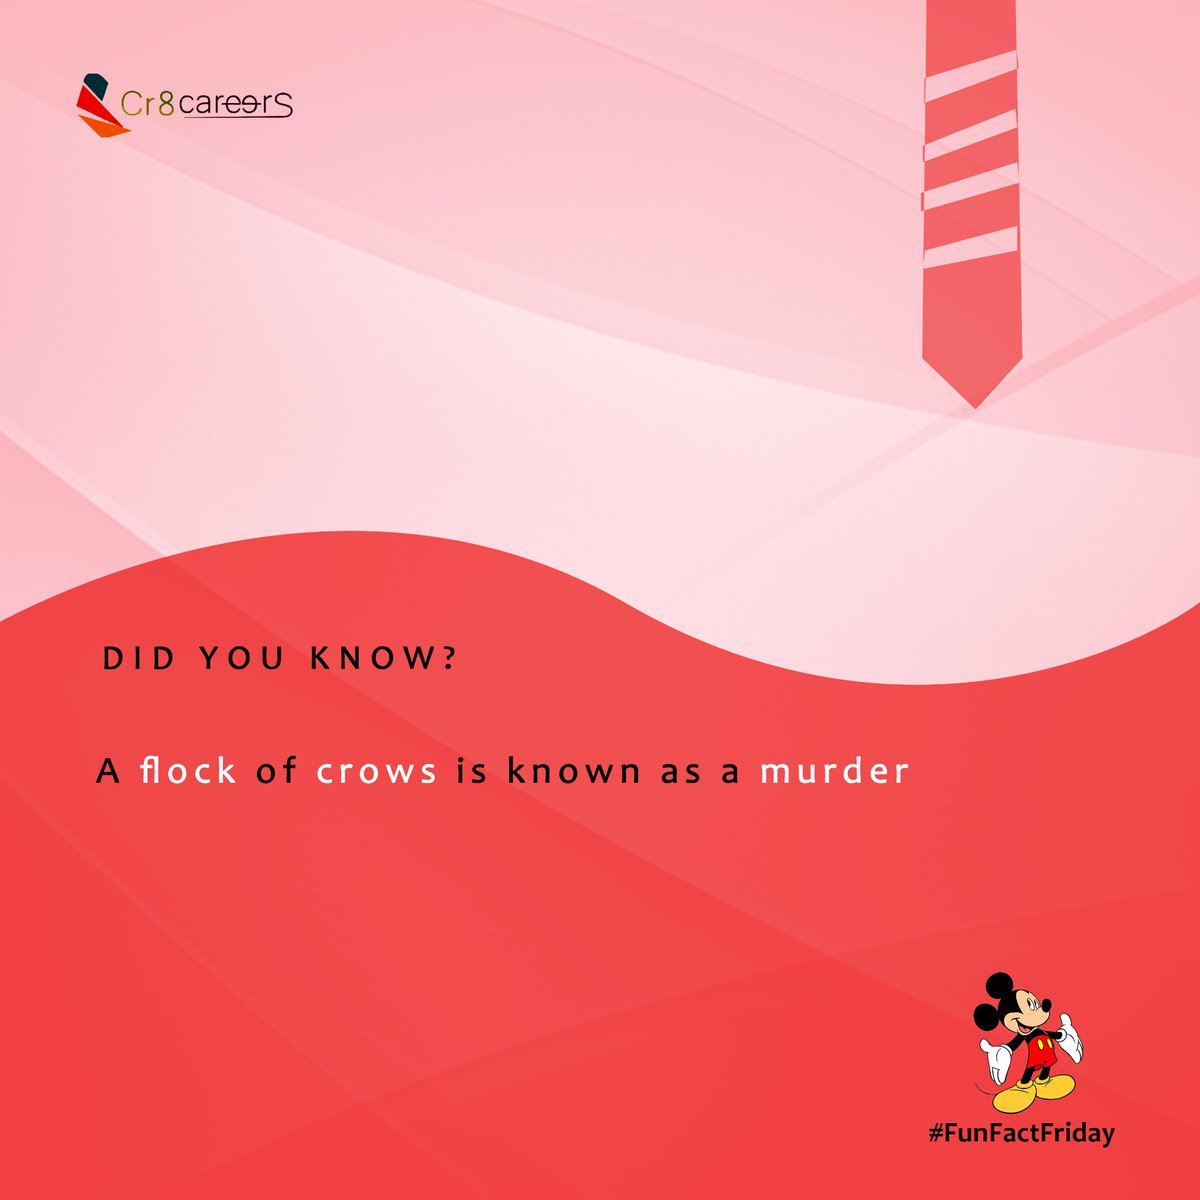 A Flock Of Crows Is Known As A Murder, Did You Know? #FunFactFriday . Follow Us #Cr8Careers . #Recruitment #Outsourcing #Assessments #OccupationalInterests #HRNigeria #CreativeBusinessOwner #CreativeHappyLife #CreativeBiz#crow #murder #Death #TGIF #crows #fri #flockpic.twitter.com/G3BsiC2yQc